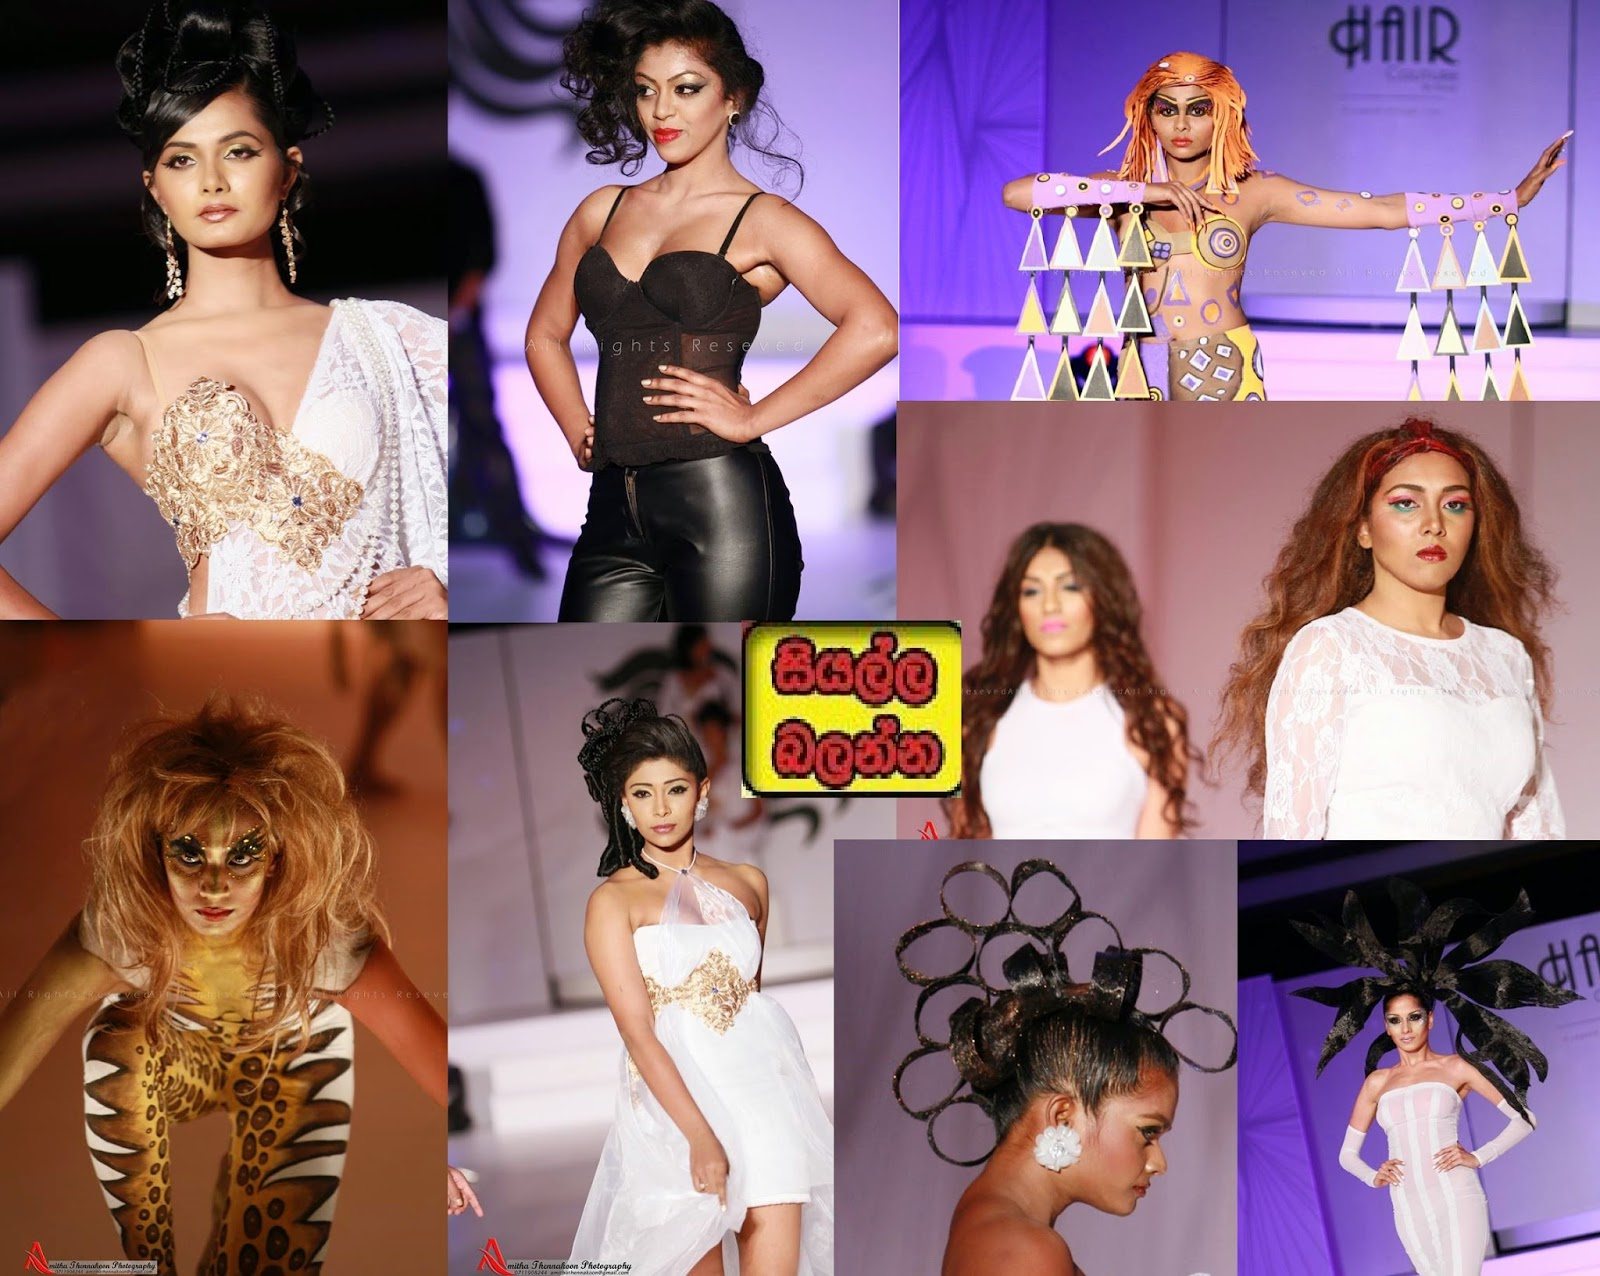 http://picture.gossiplankahotnews.com/2014/10/hair-couture-ramzi-rahaman.html